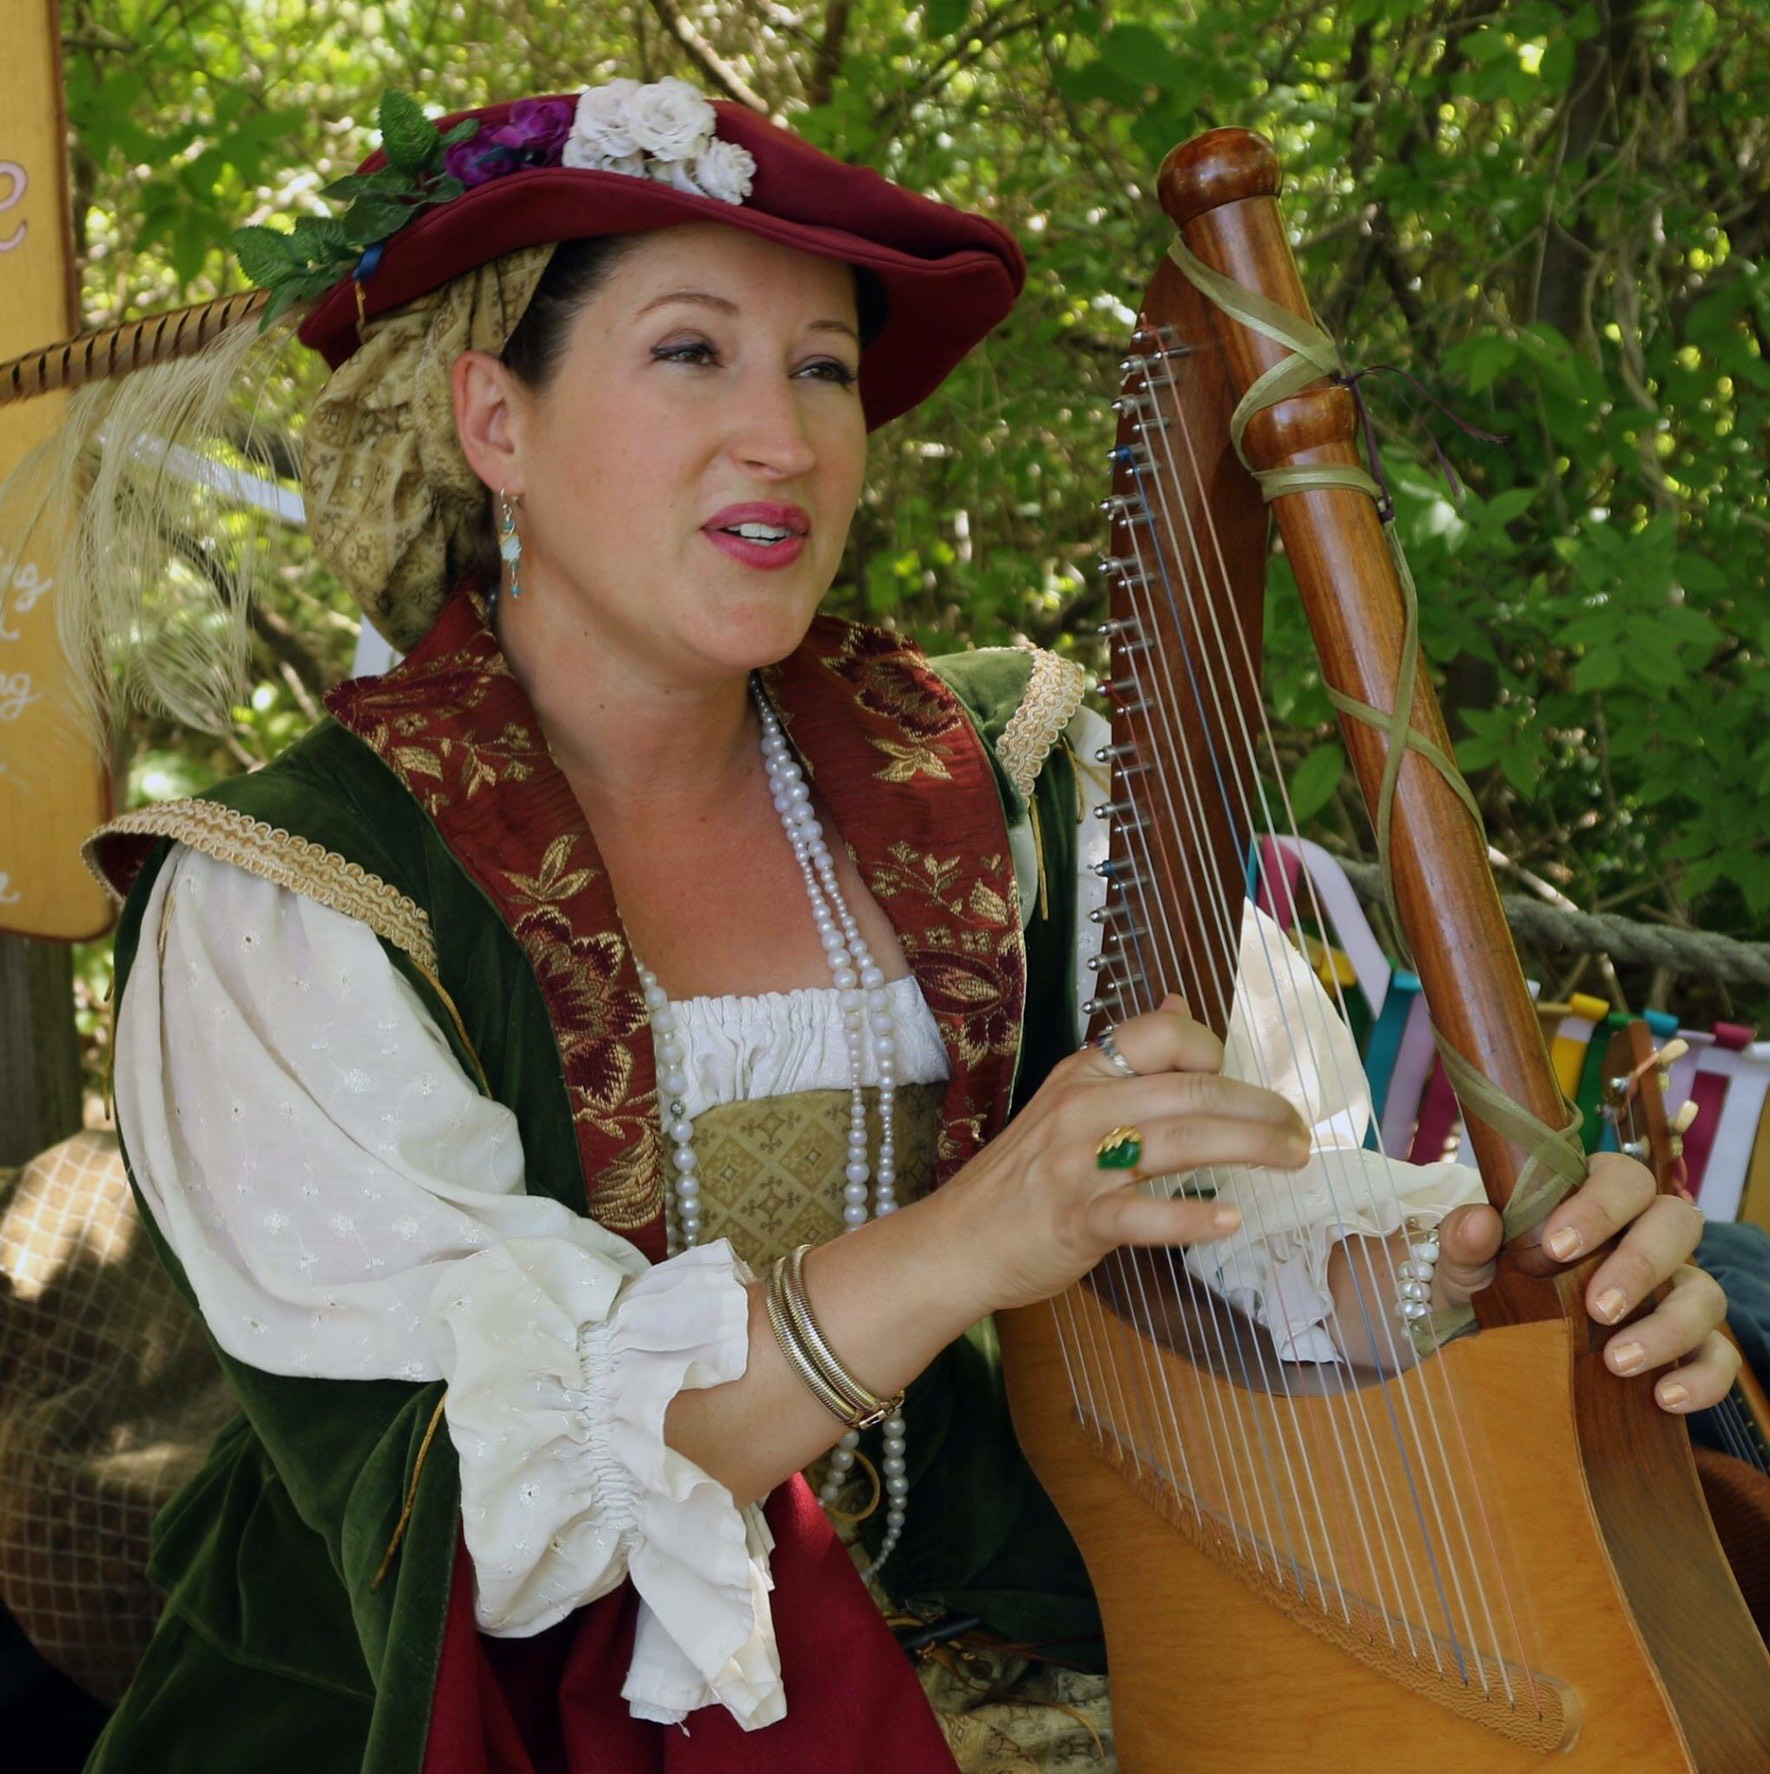 Entertainment: Lady Prudence harper musician